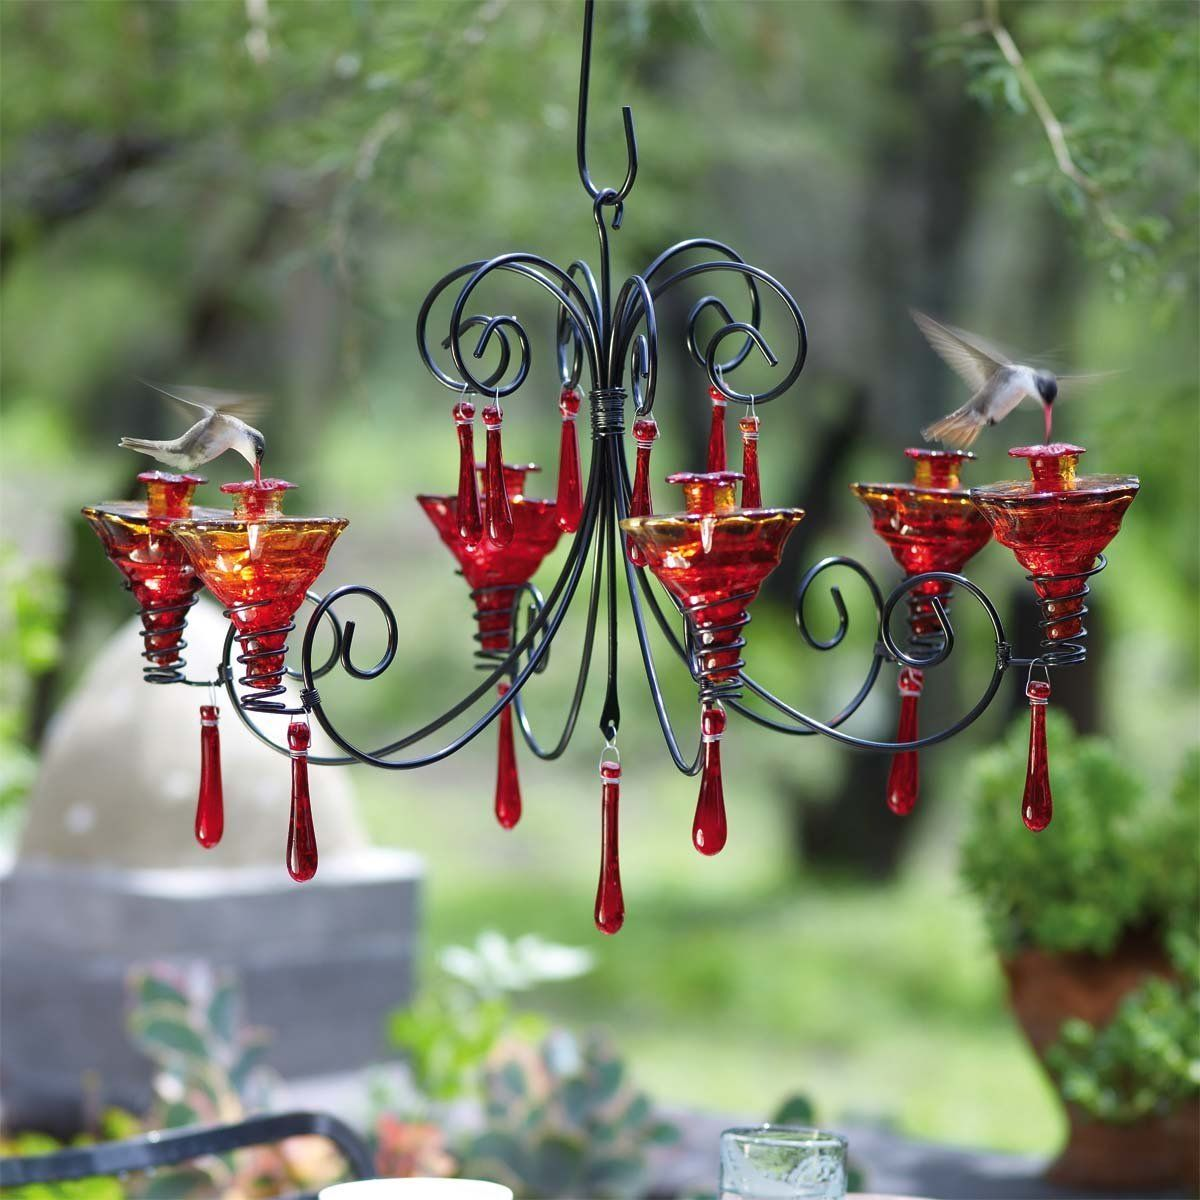 Amazon Com Parasol Grchglfr Grand Chandelier Hummingbird Feeder Flame Red Discontinued By Manufa Humming Bird Feeders Glass Hummingbird Feeders Garden Gifts